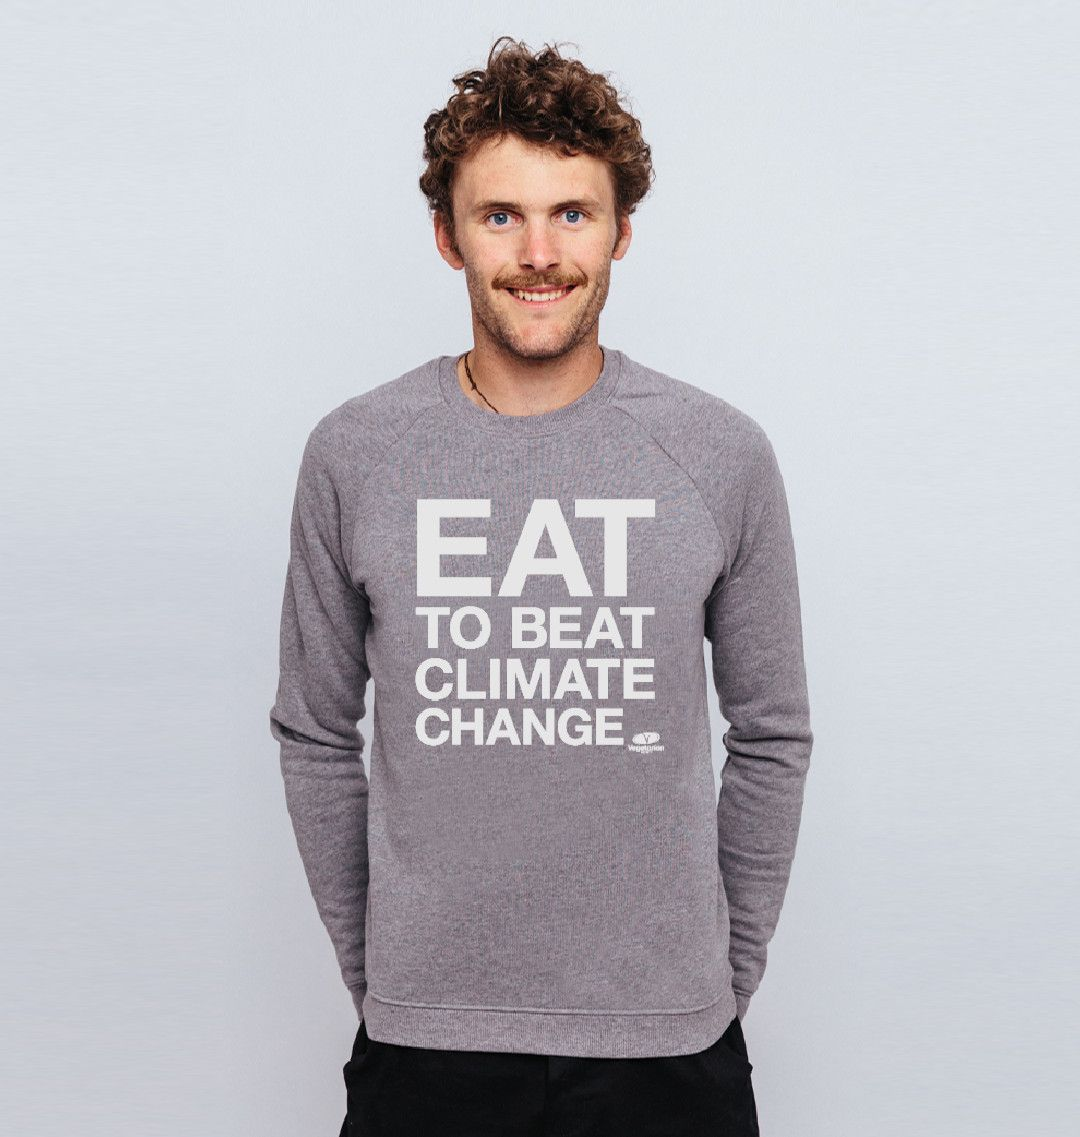 Stay warm in the cold weather and make a statement at the same time! Buy your #EatToBeatClimateChange jumper here: